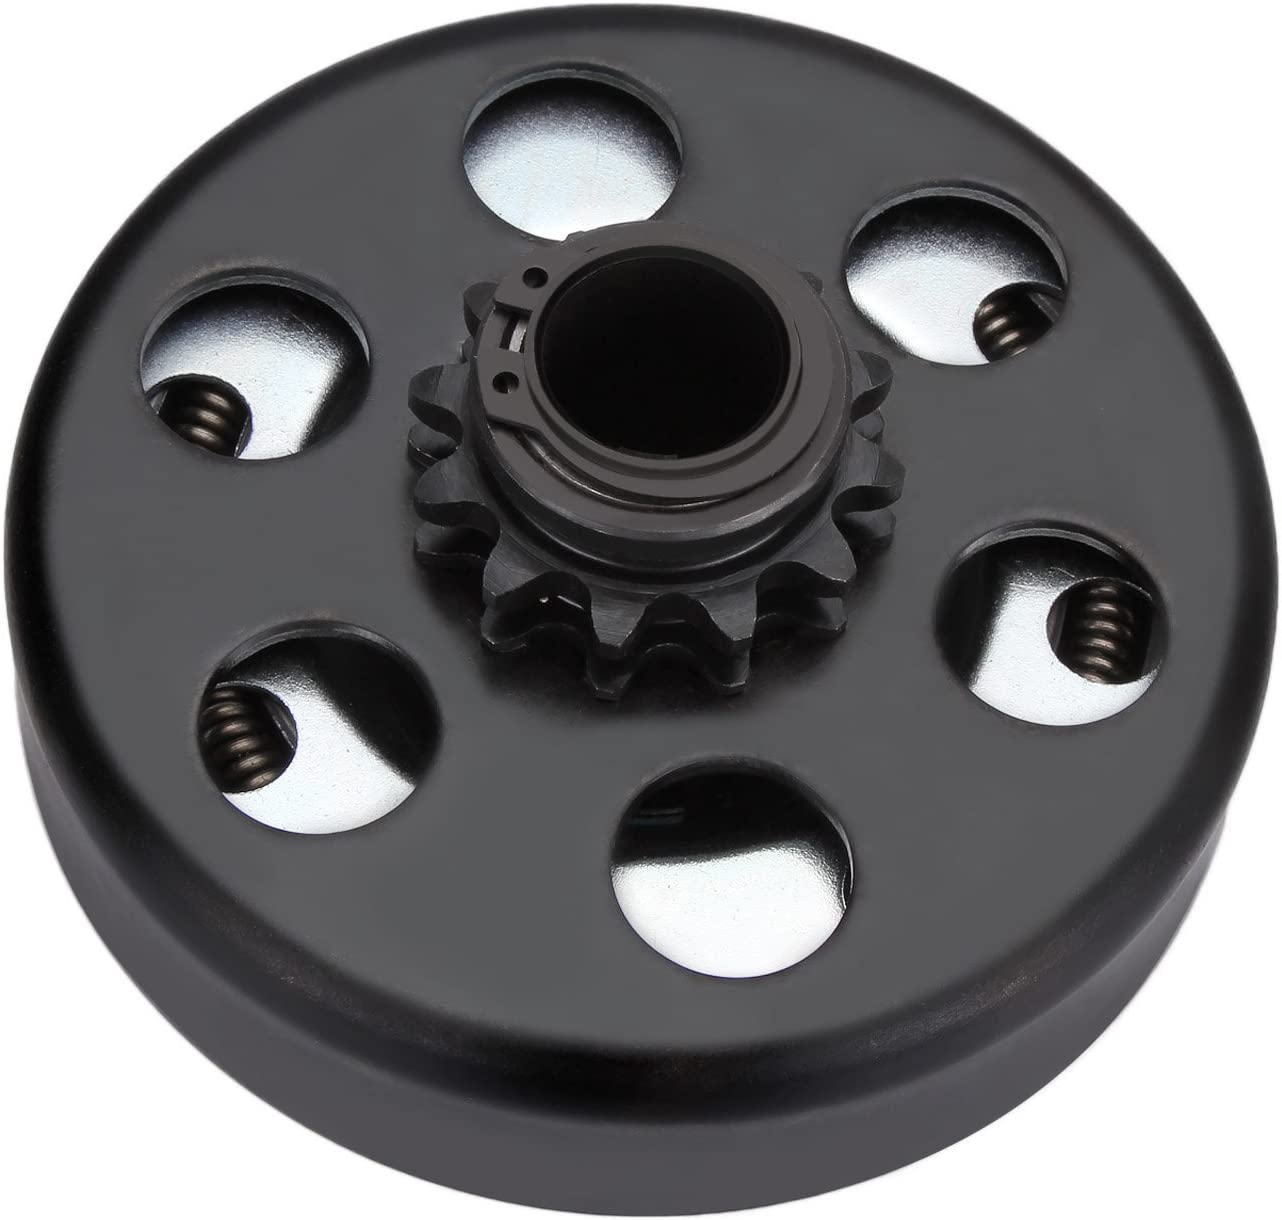 Go-kart Mini-bike Centrifugal Clutch 3//4 bore 12 tooth #35 chain with Set Screws From Madlife Garage